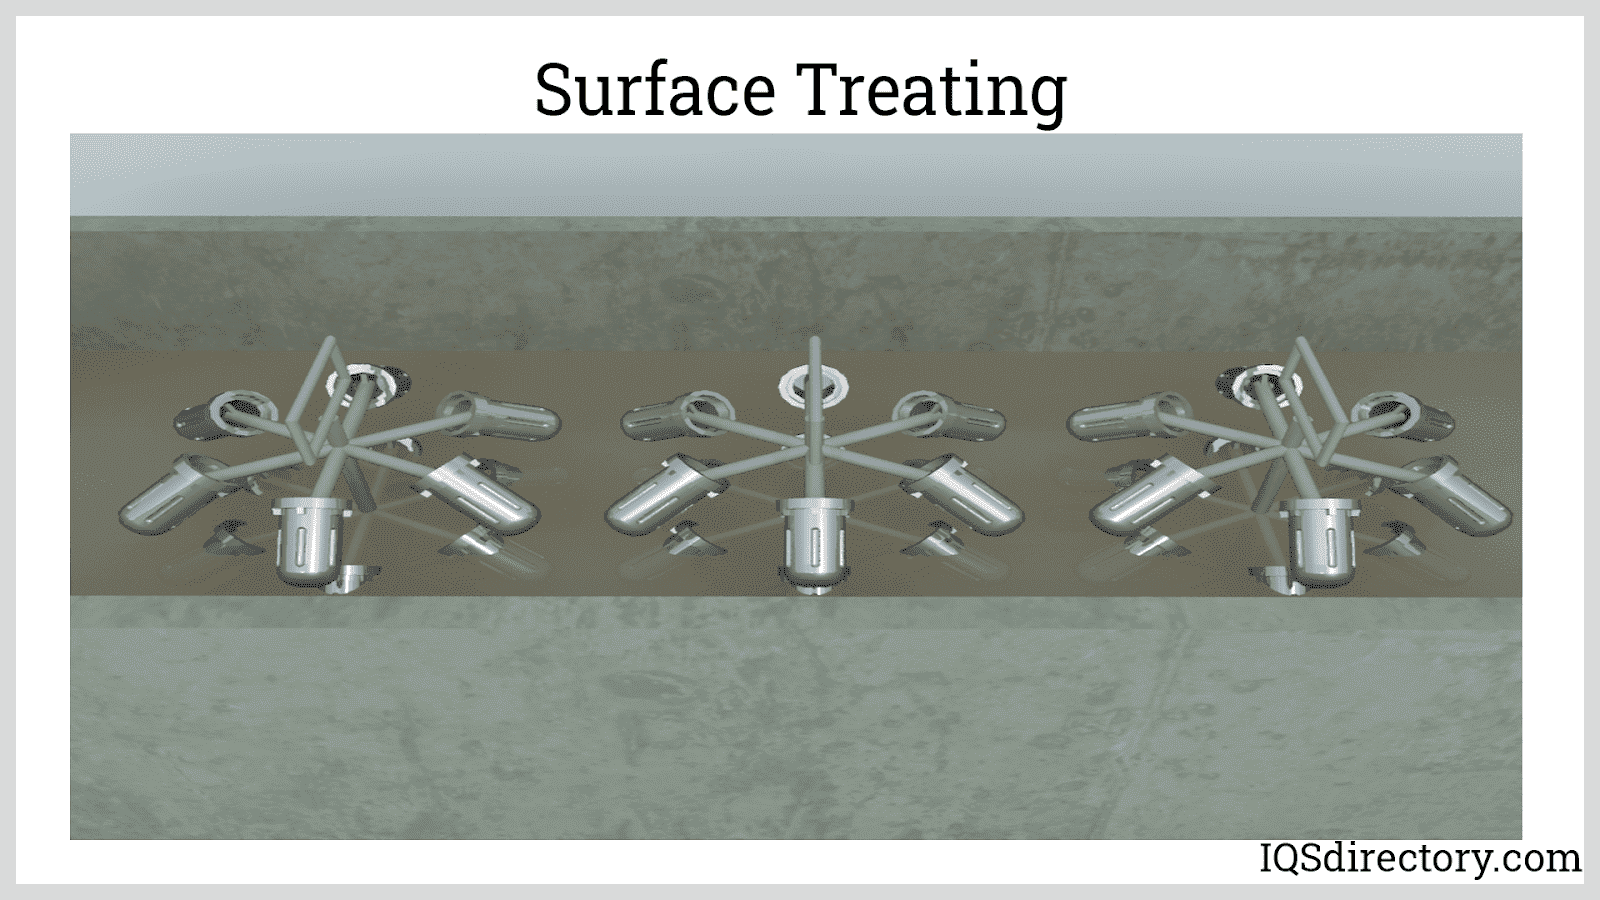 Surface Treating